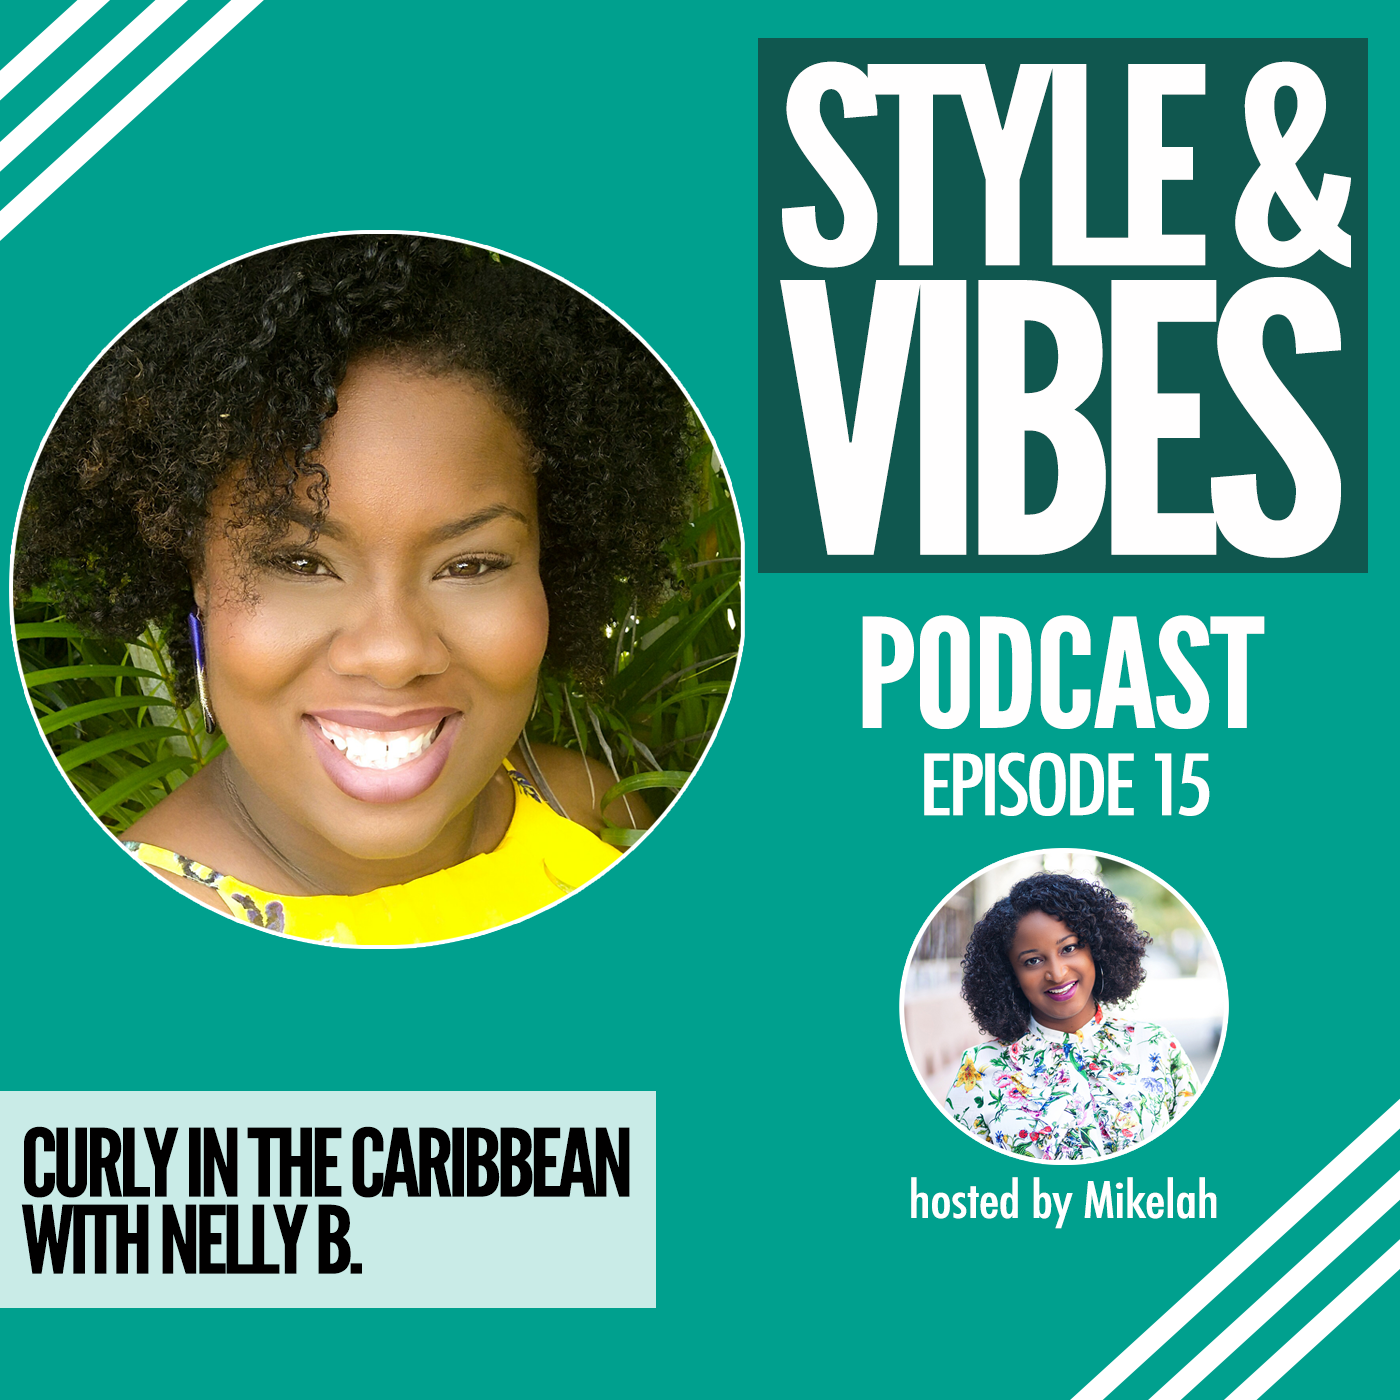 Curly in the Caribbean with Nelly B